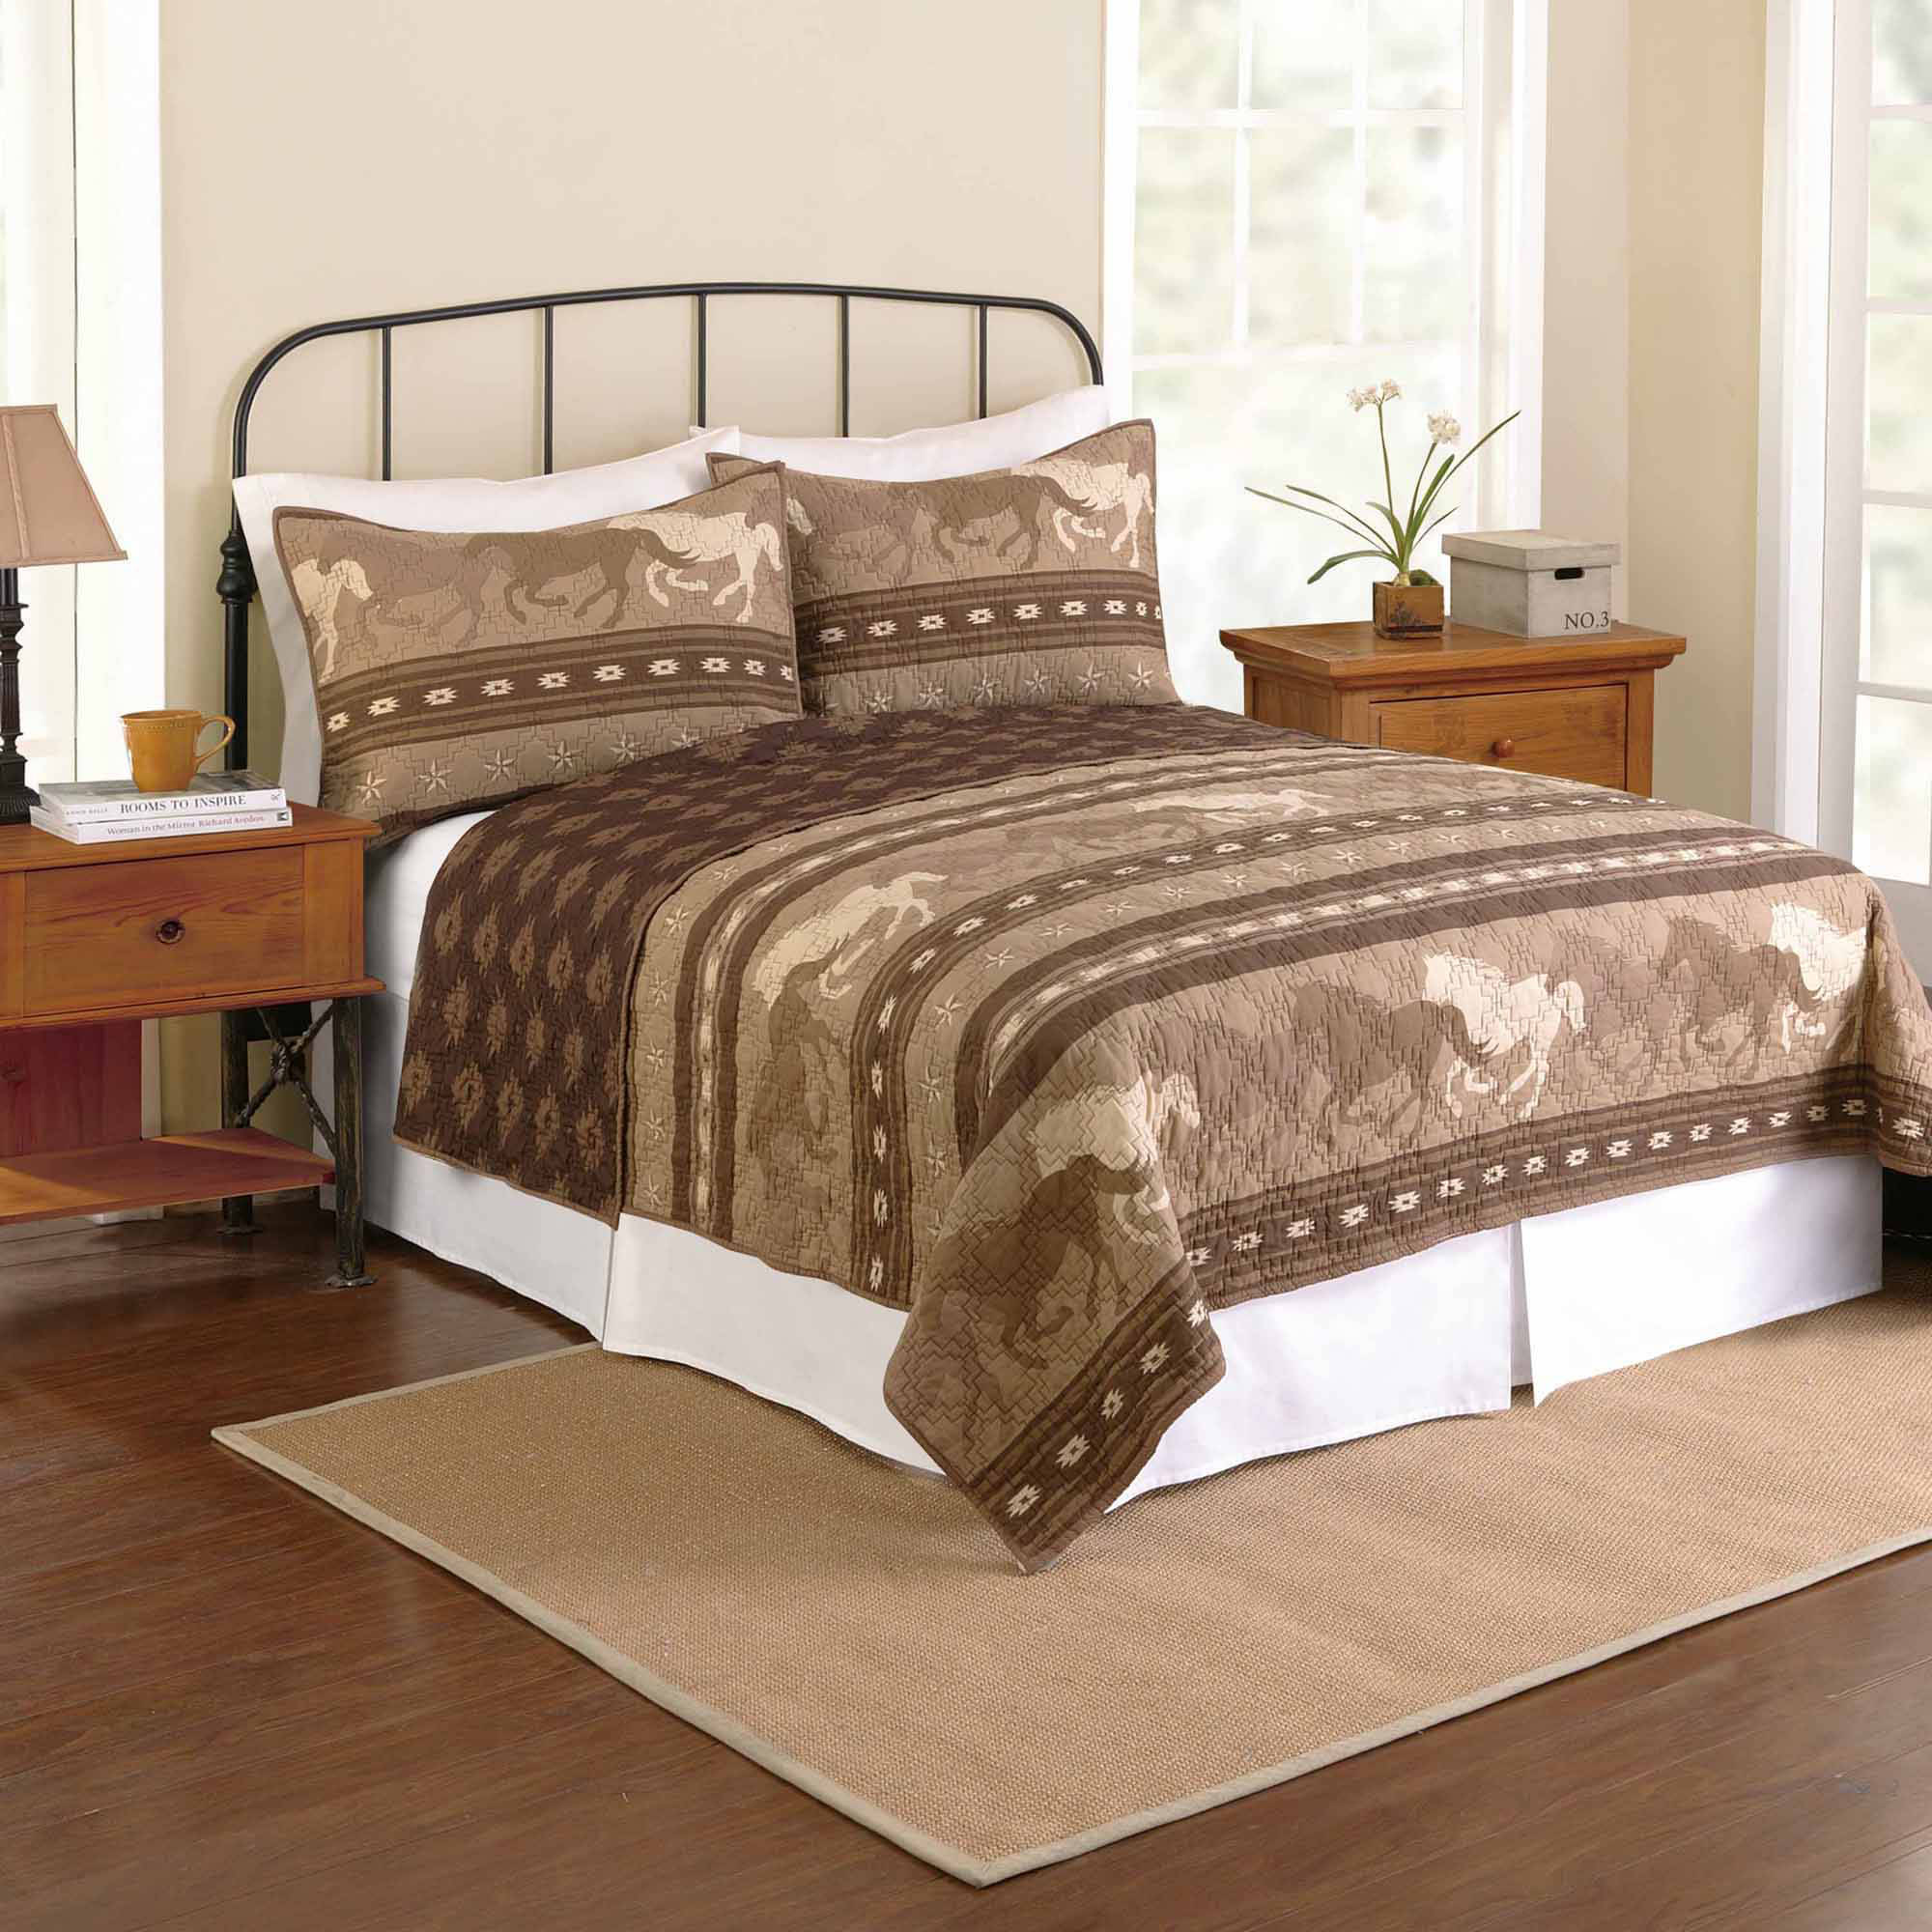 better homes and gardens texas horse bedding quilt brown walmartcom - Horse Bedding